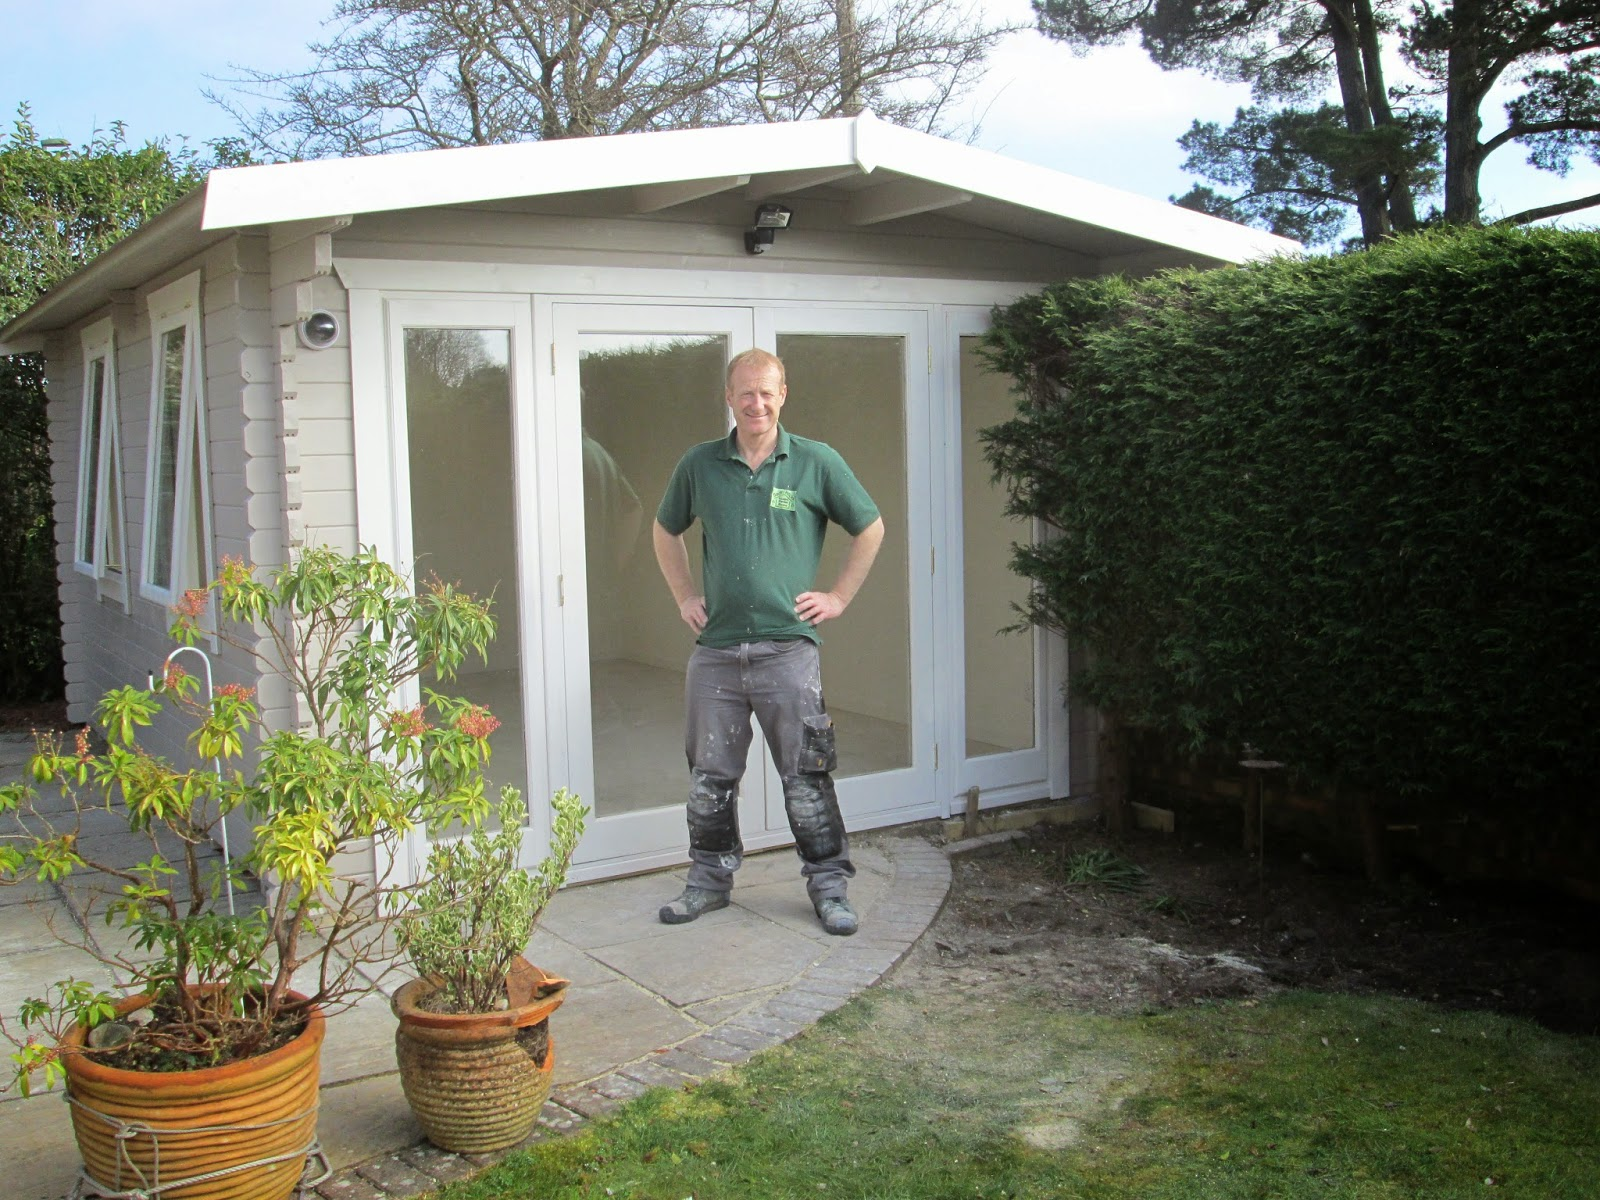 Southwick 39 s garden offices march 2015 for Garden room definition